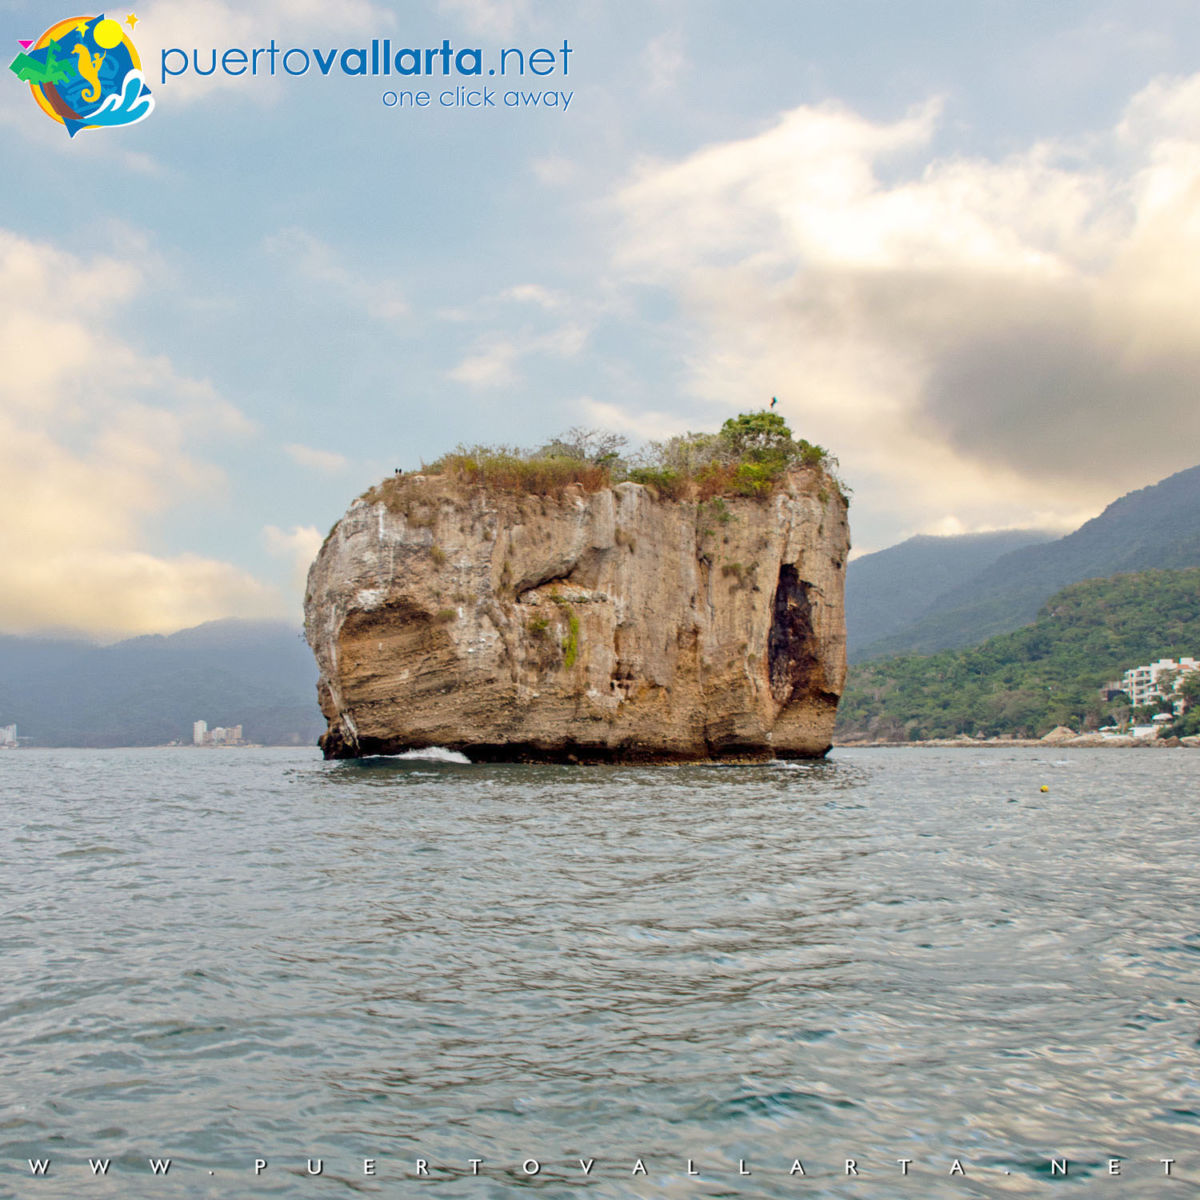 La Roca del Diablo (The Devil's Rock), The Mismaloya Arches, Puerto Vallarta